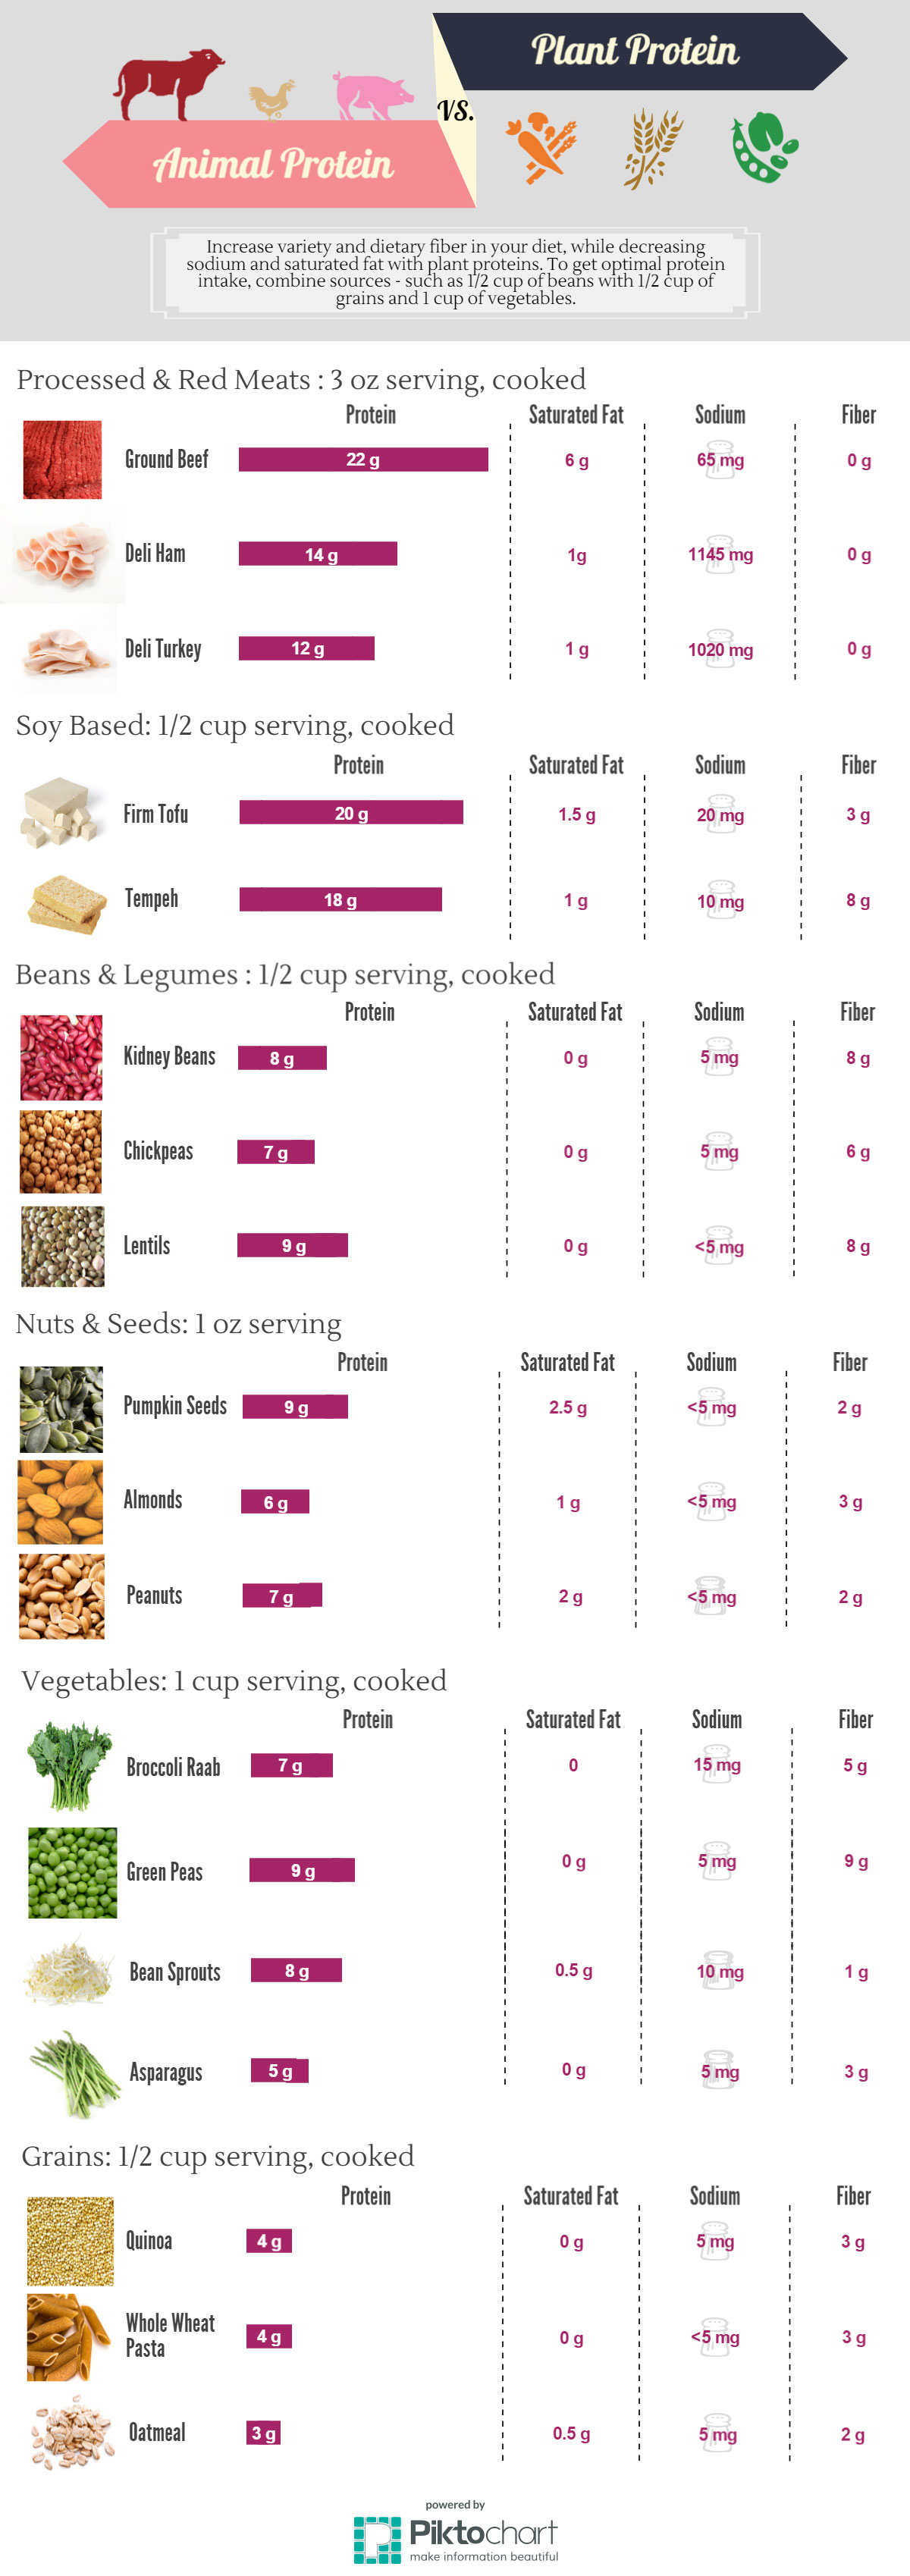 Image Result For Comparison Of Amount Protein In Plants Vs Animals